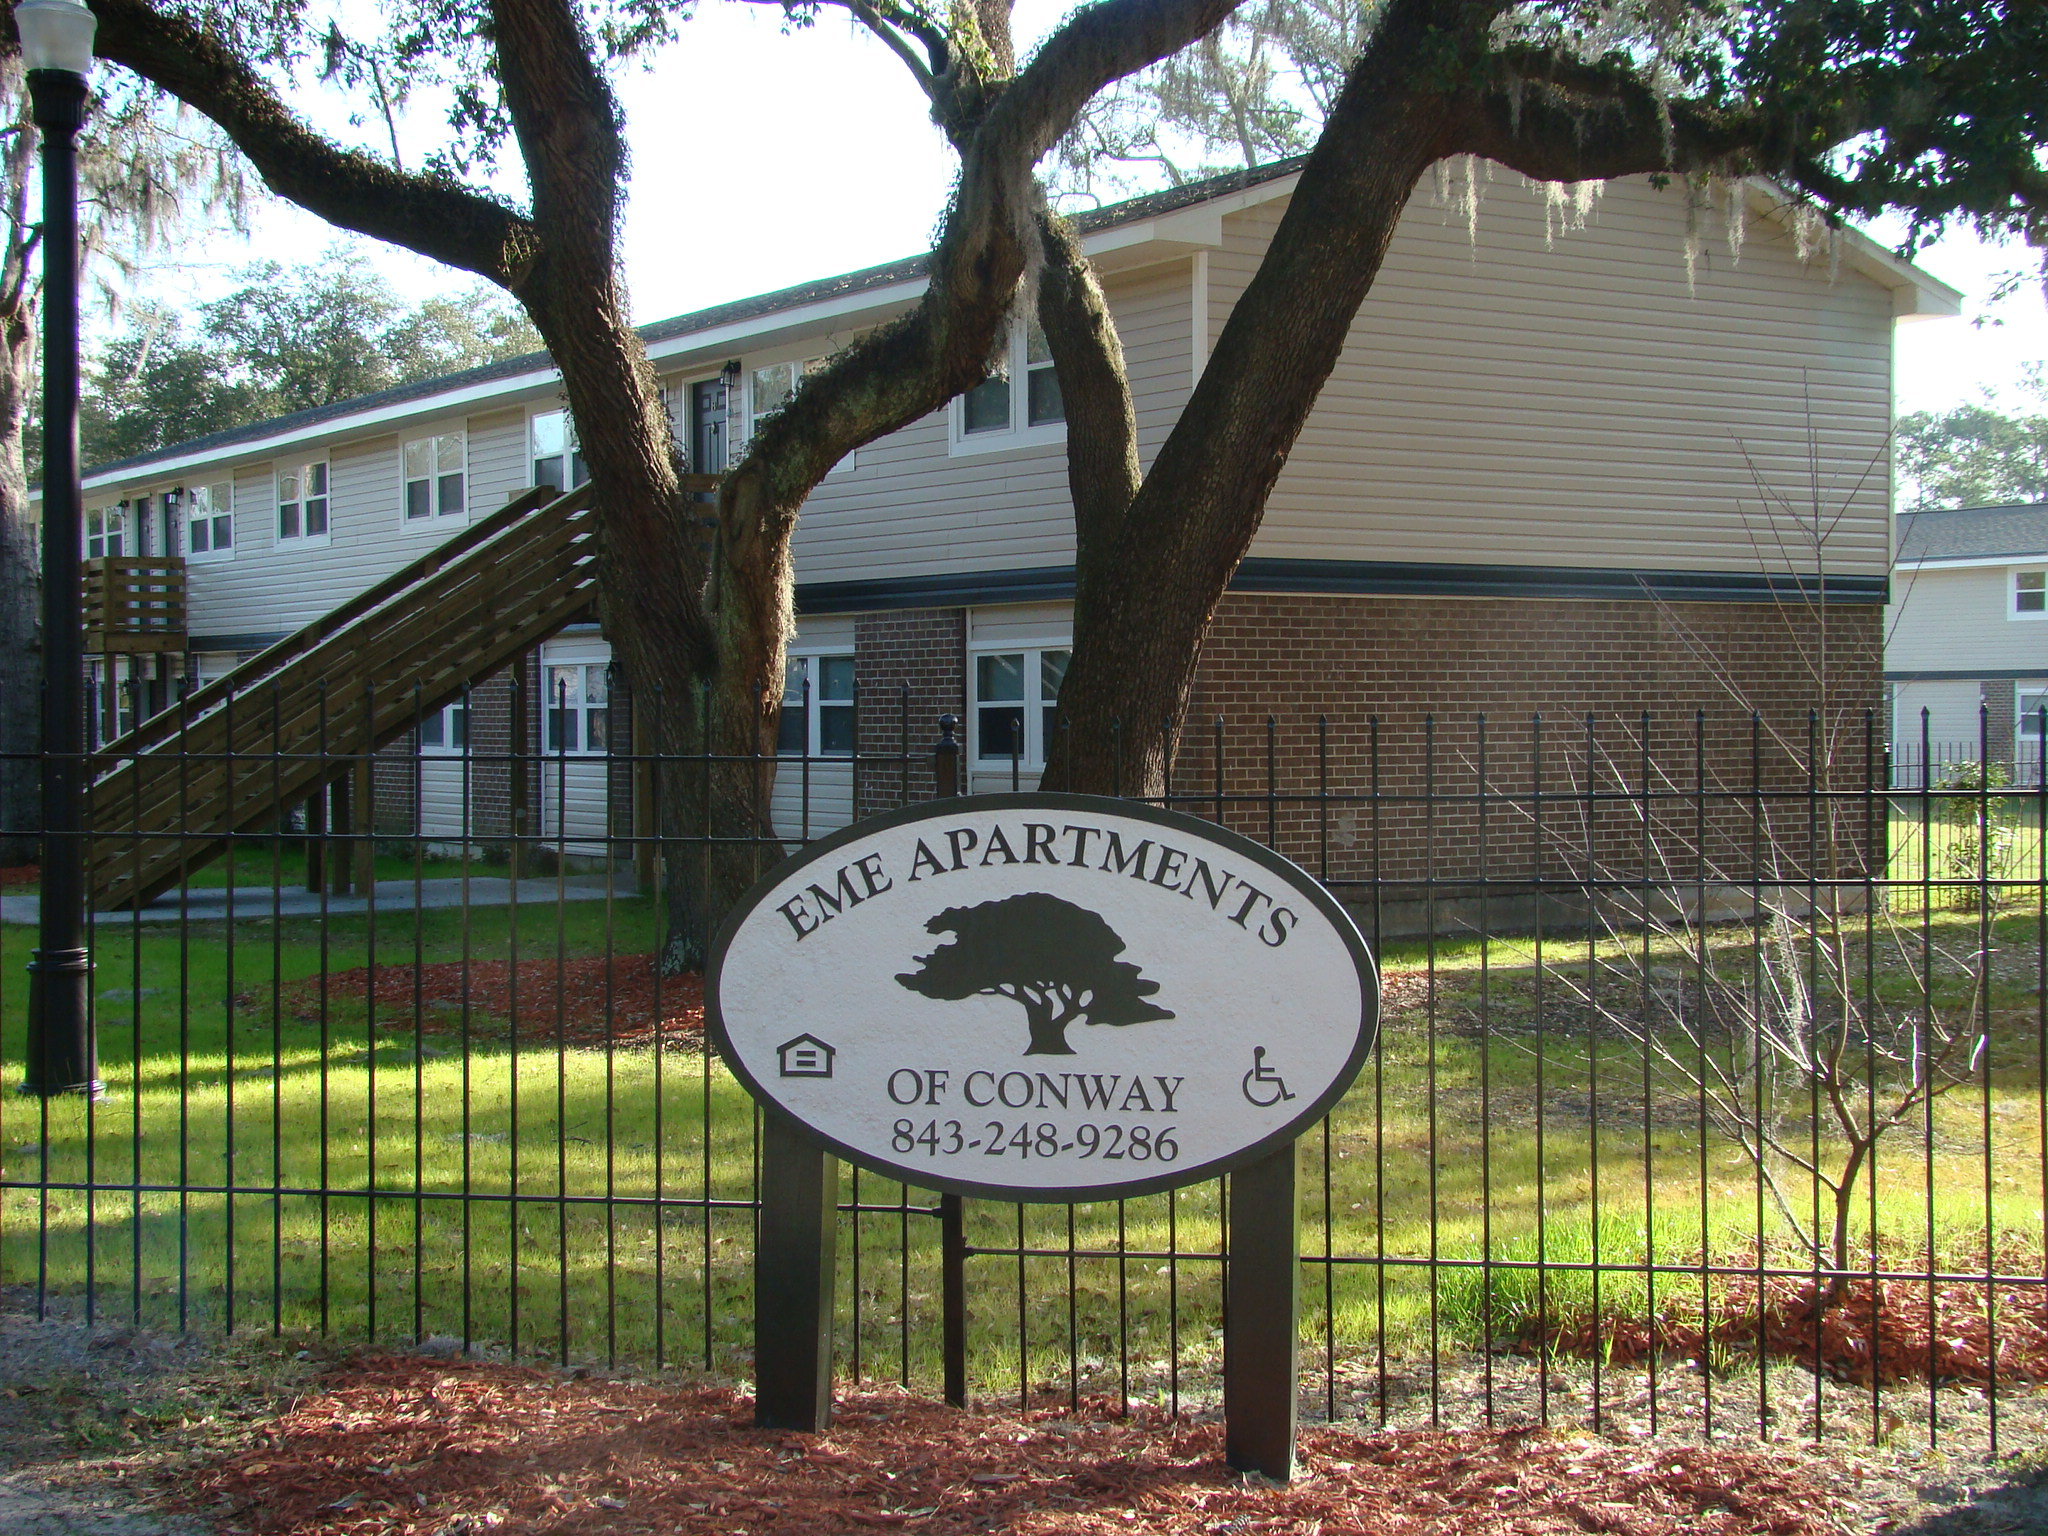 Eme Apartments Of Conway | Conway SC Subsidized, Low-Rent